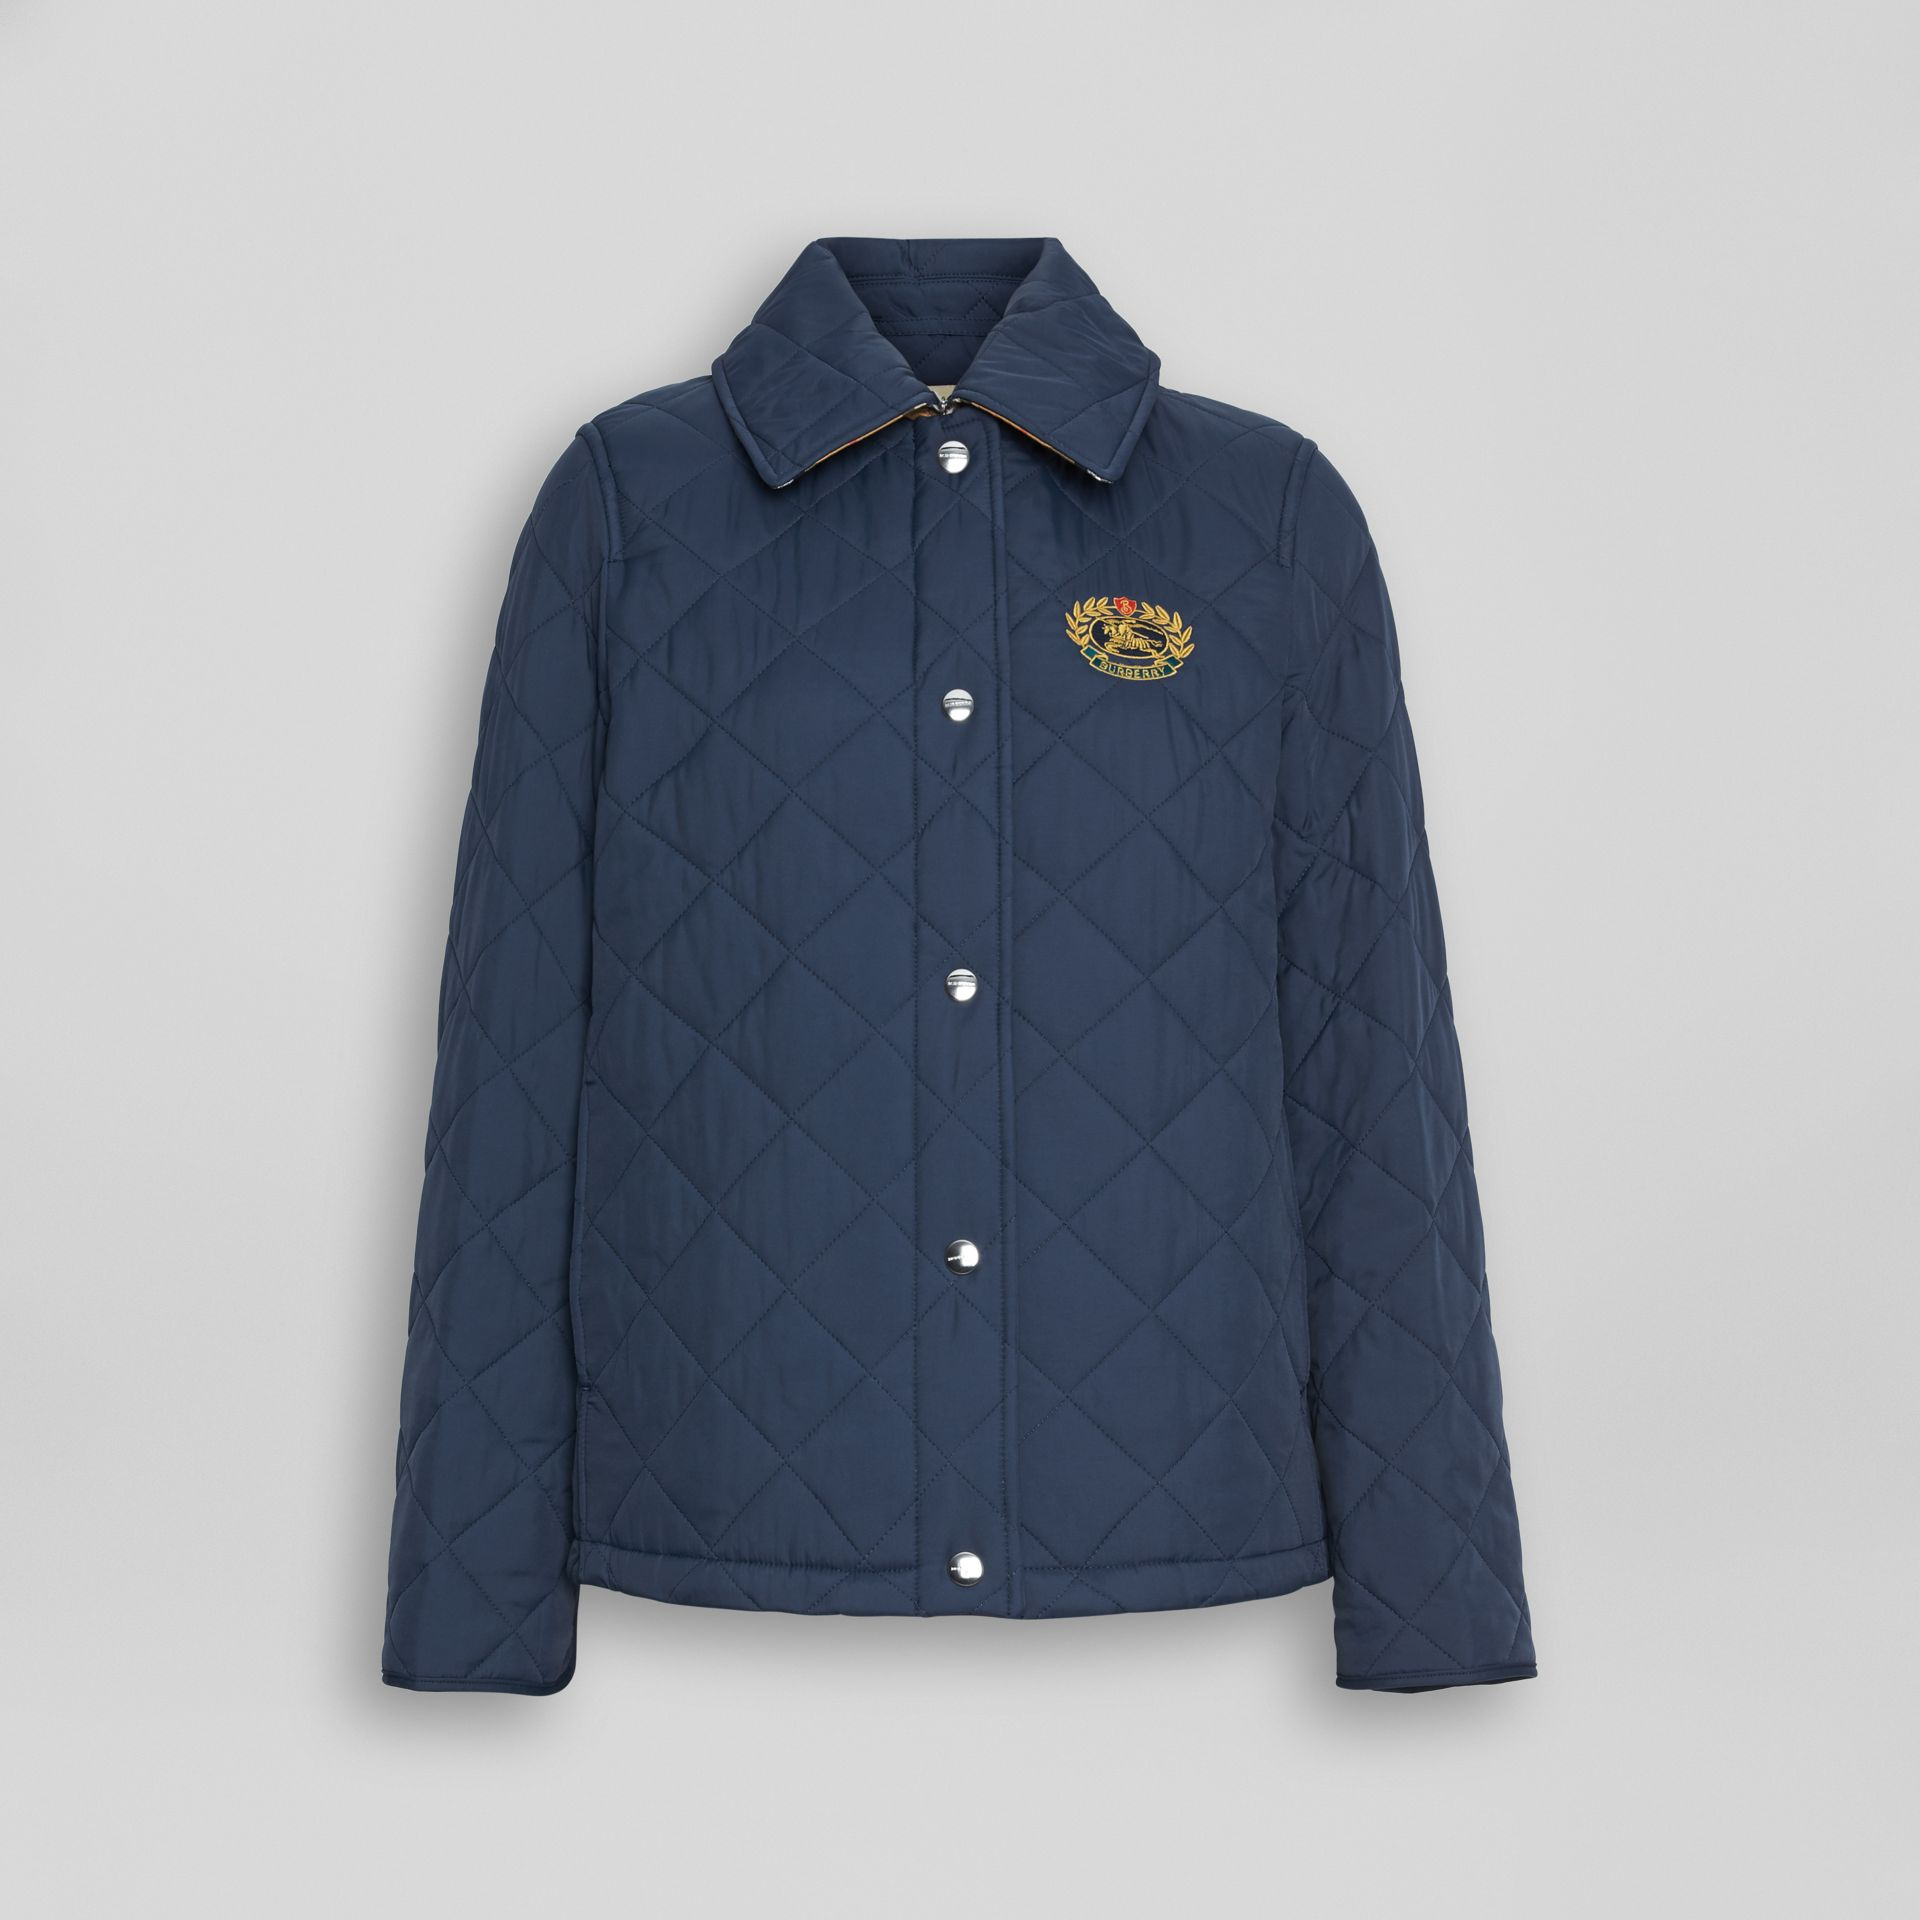 Embroidered Crest Diamond Quilted Jacket in Navy - Women | Burberry - gallery image 3